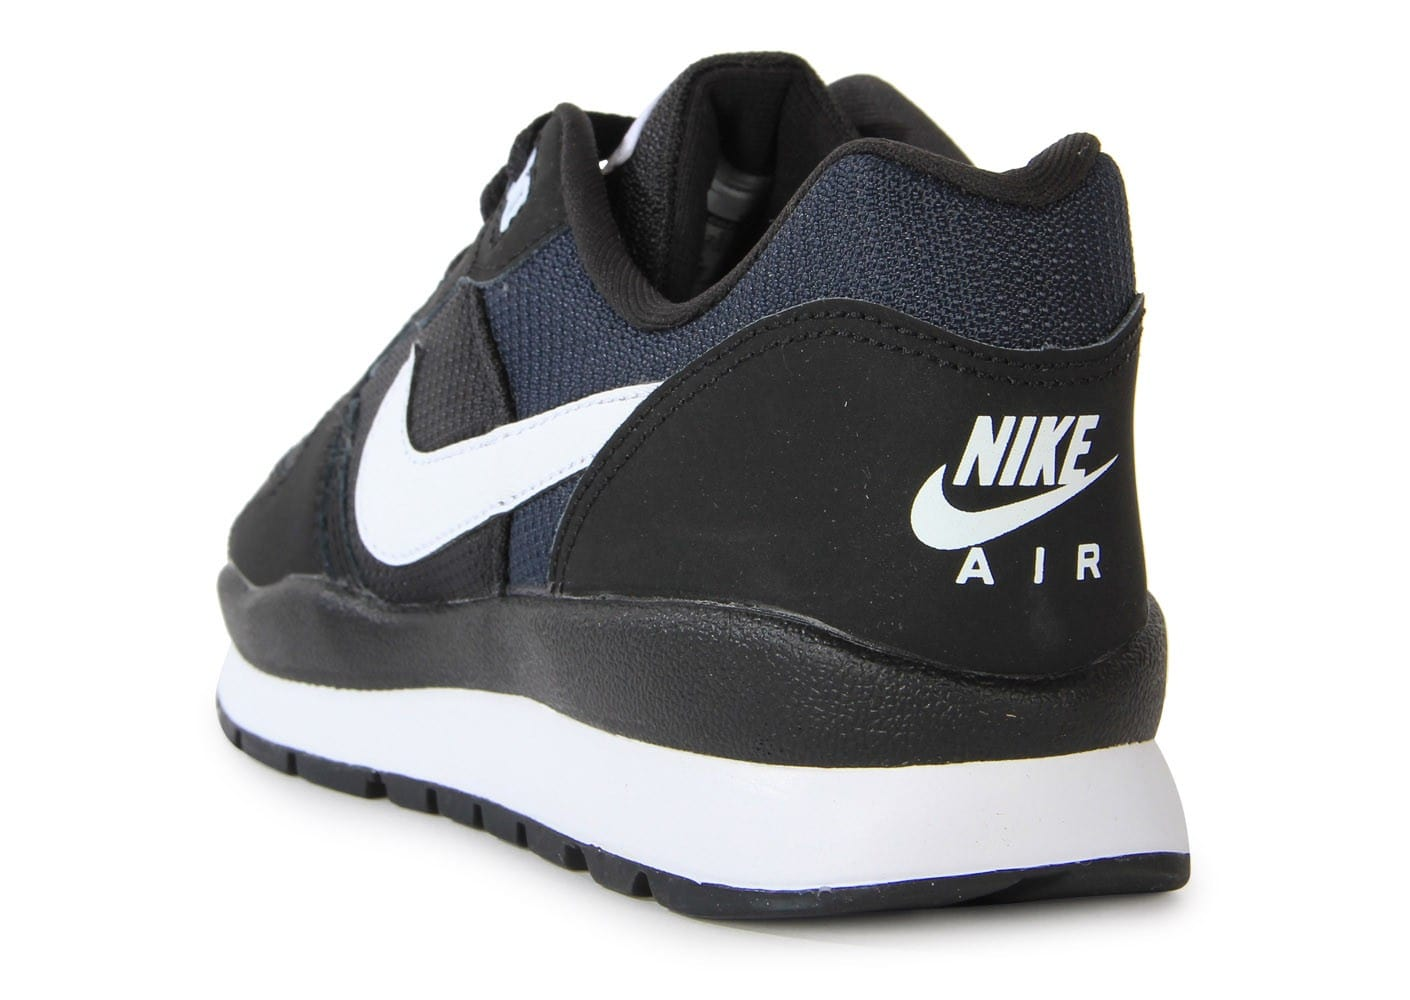 pretty nice f534a 8903c ... Chaussures Nike Windrunner Noire vue arrière ...